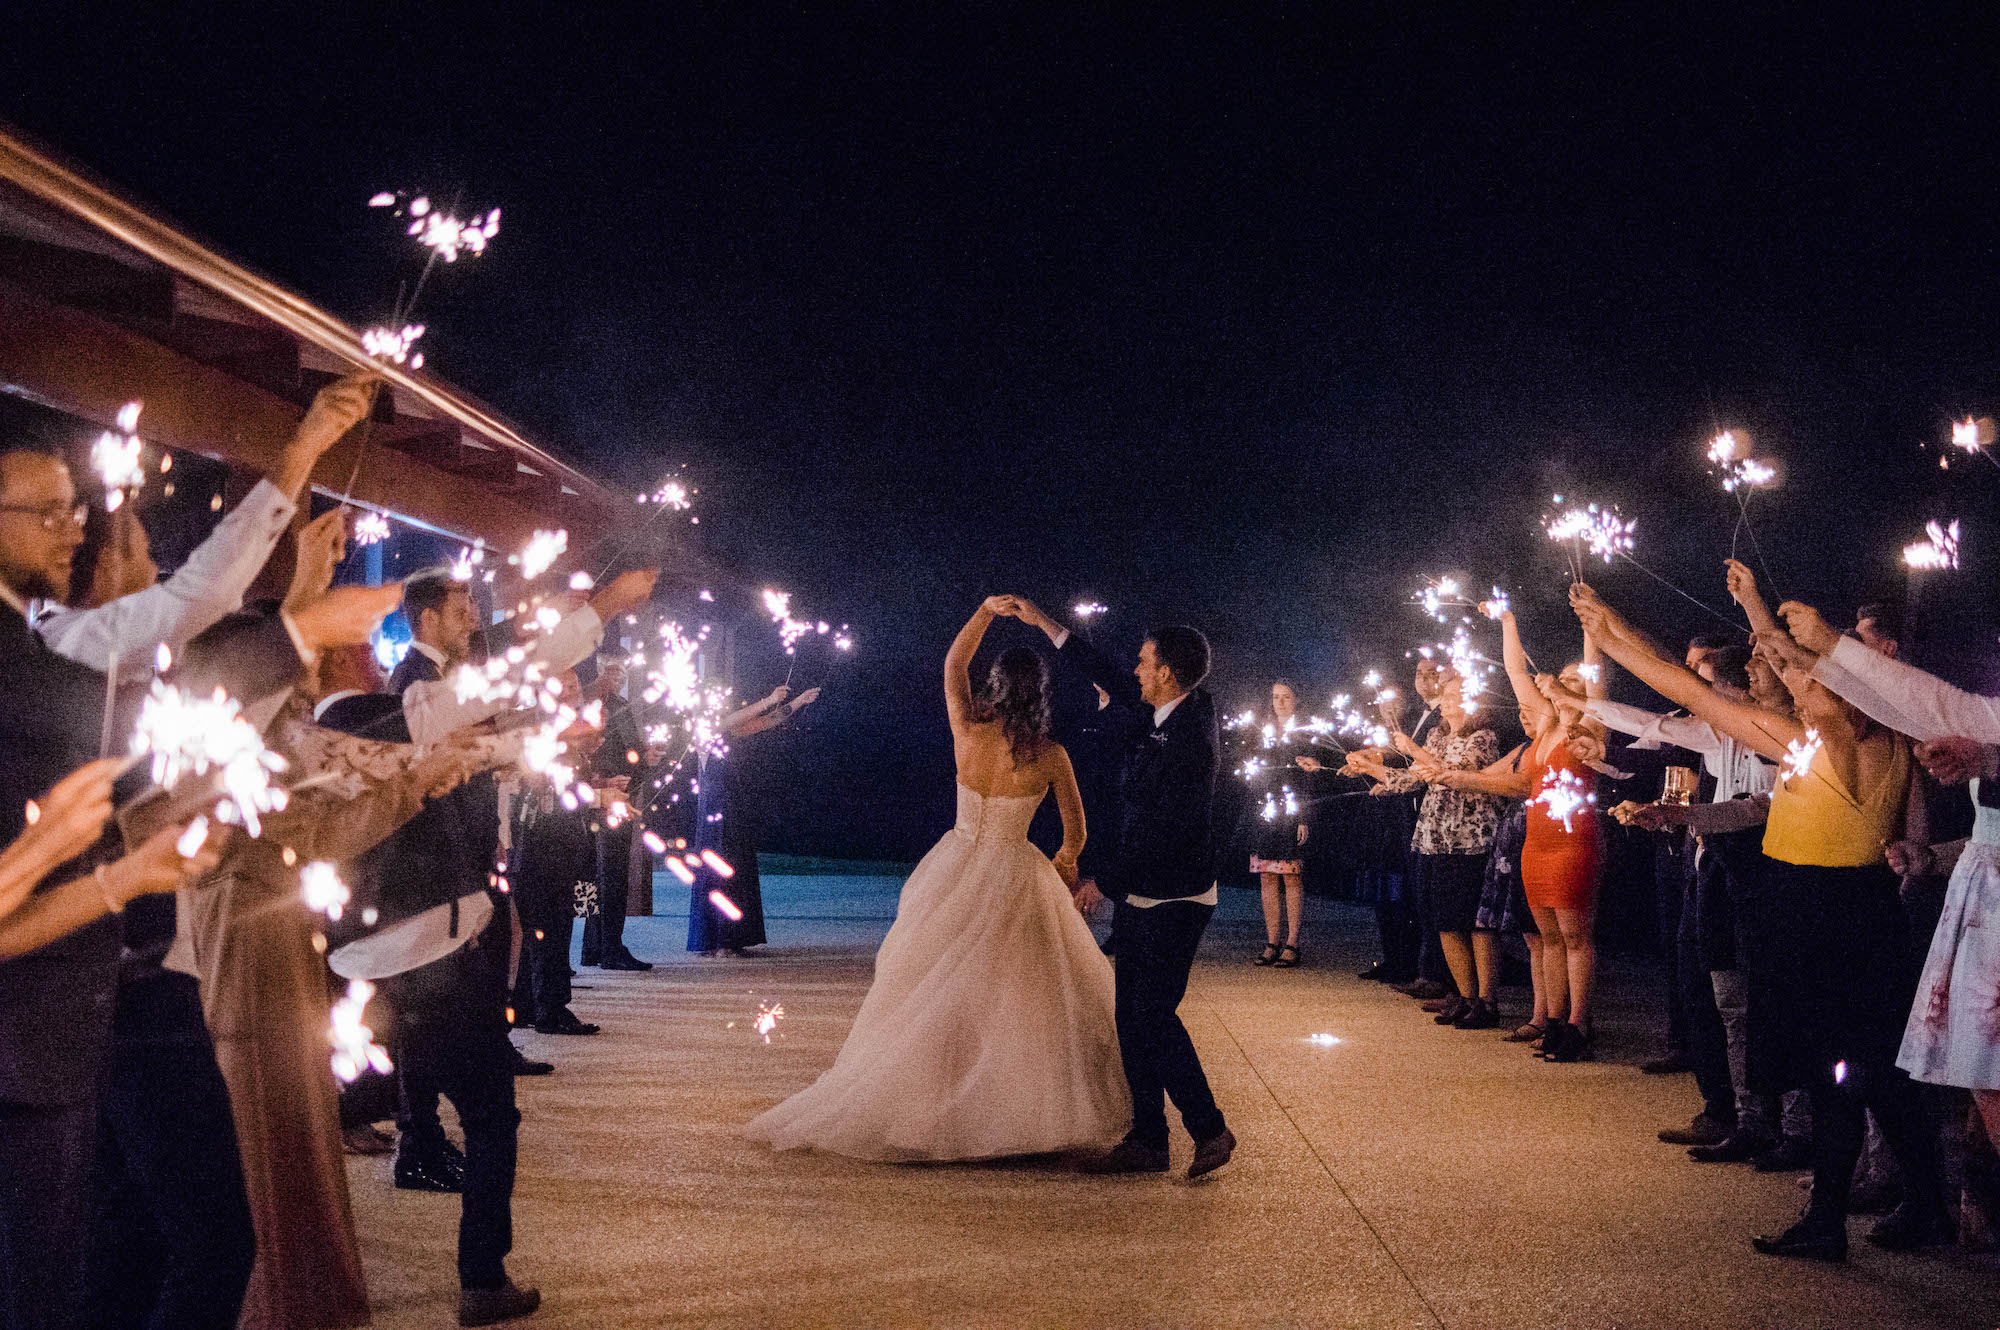 The groom dances with the bride as they do a sparkler exit at Quarry Farm, Australia.